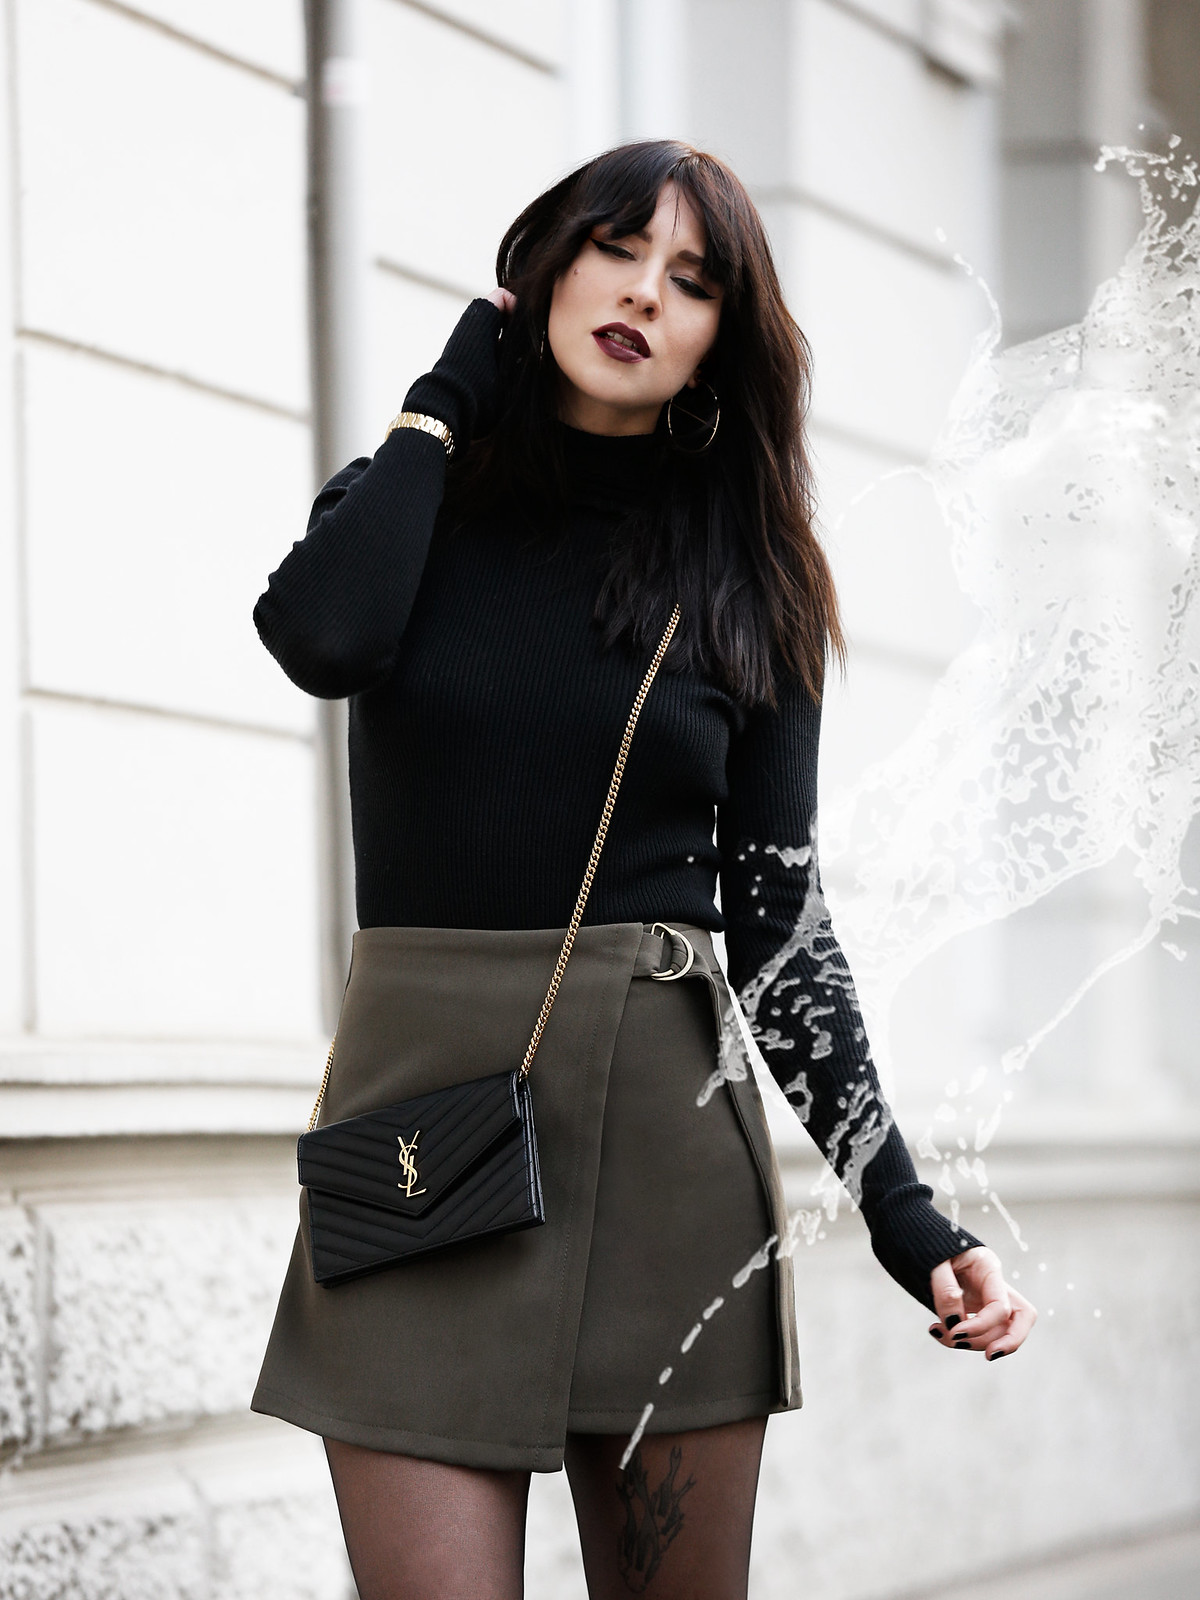 ootd outfit look magazine style mag fashion fashionblogger autumn gothic look black lips dark turtleneck golden watch ysl saint laurent paris bag mini skirt legs boots bangs brunette parisienne modeblogger düsseldorf berlin cats & dogs ricarda schernus 4